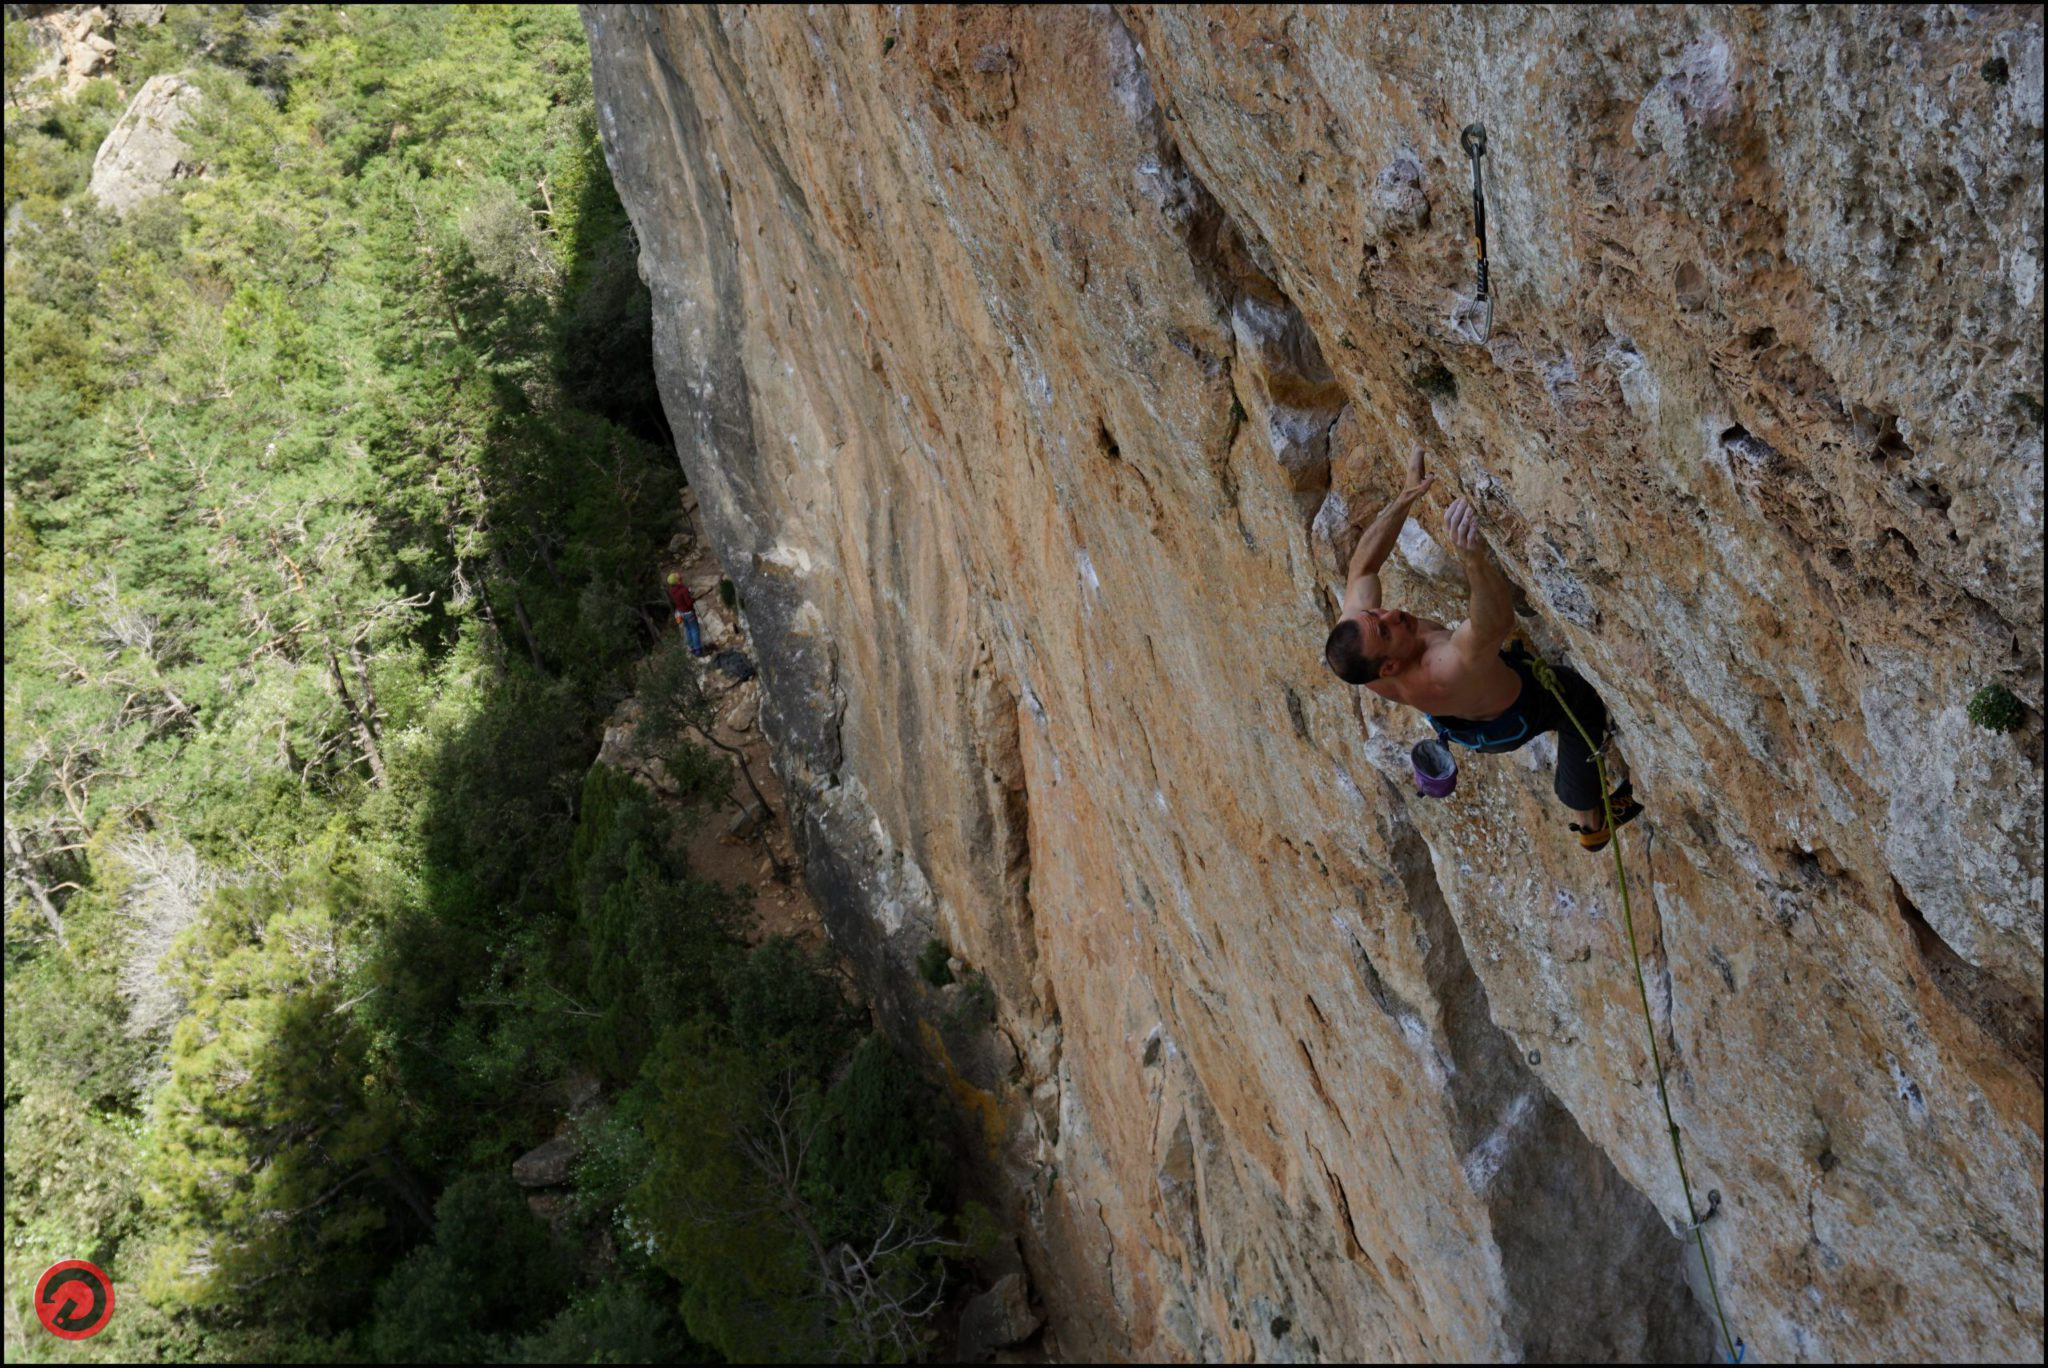 Europe rock climbing road trip: Join for all 8 weeks or 1 week